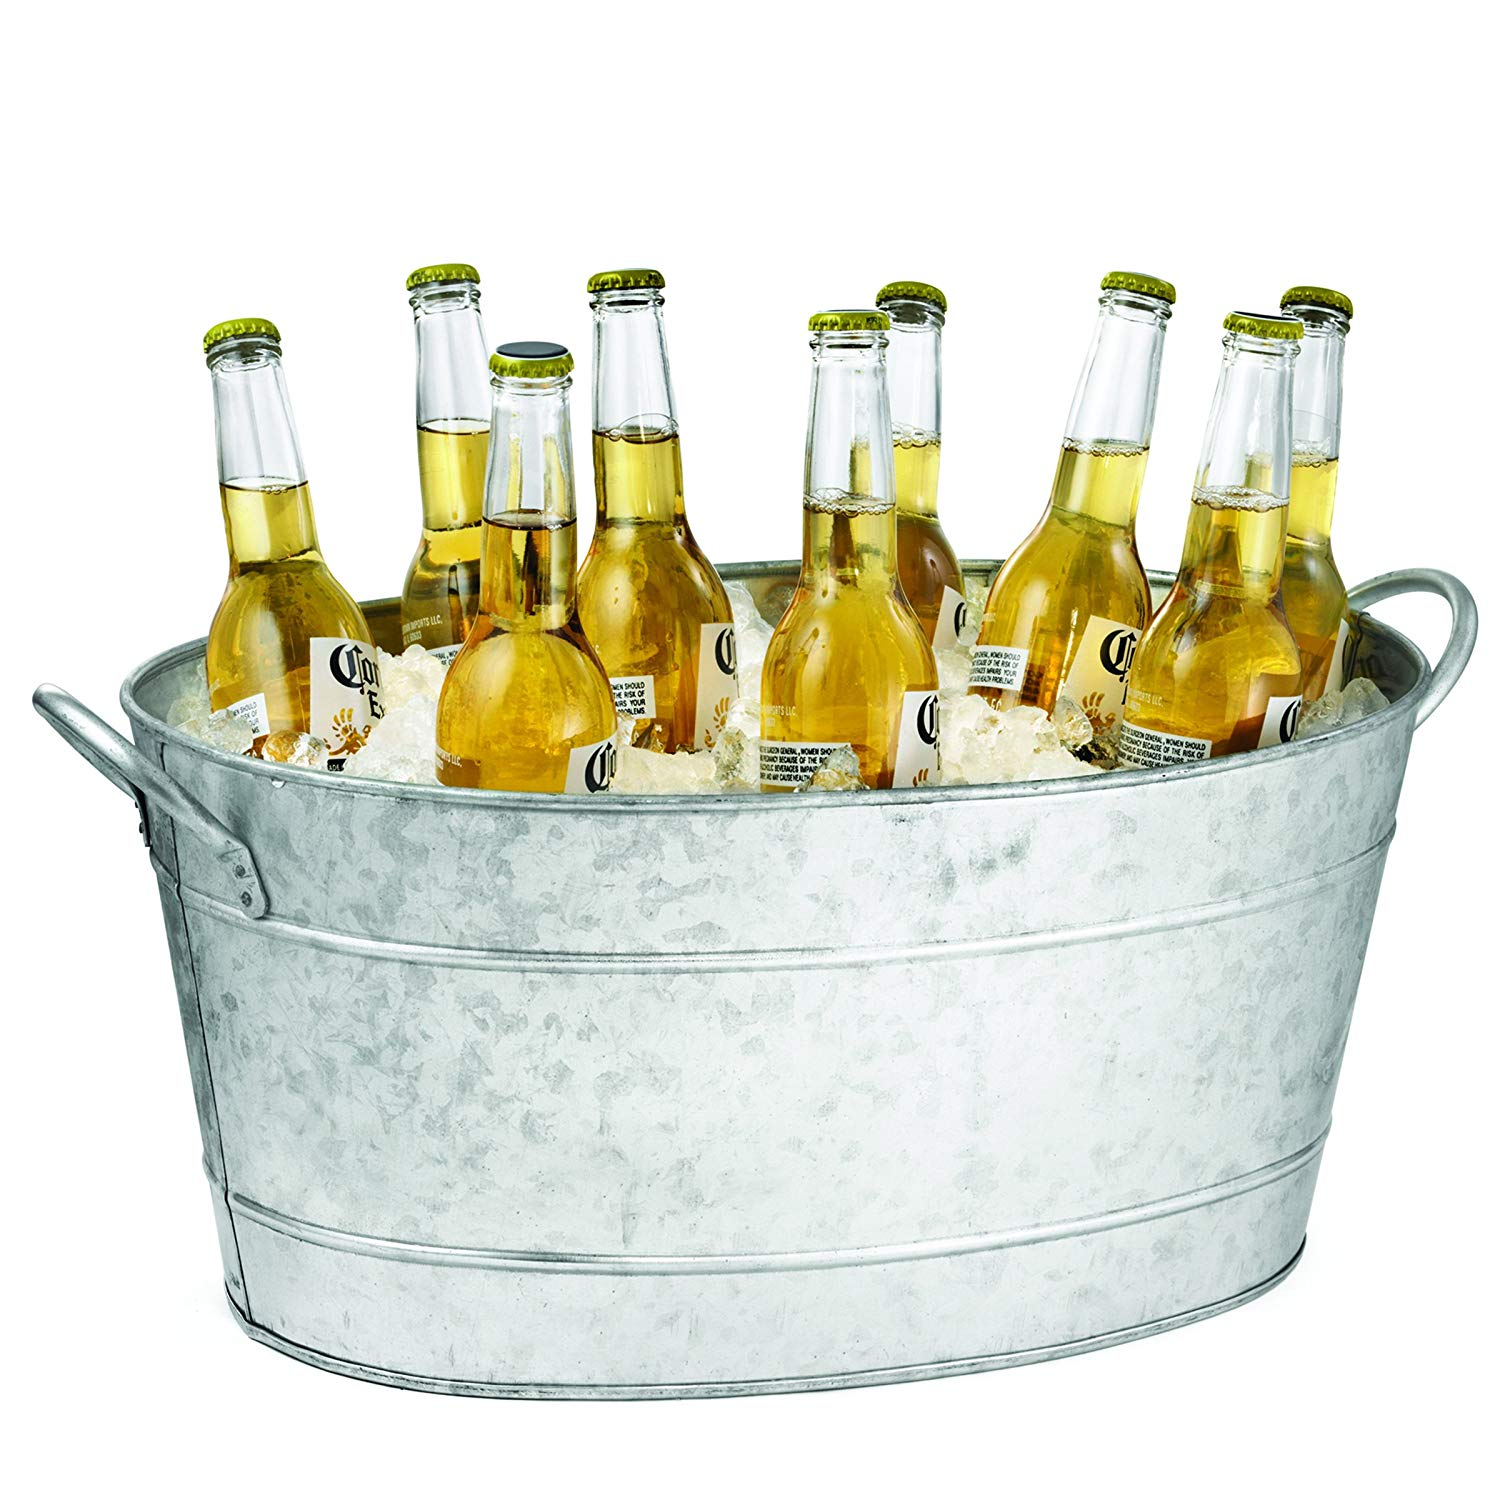 Table craft galvernised oval beverage tab 5.5 litres